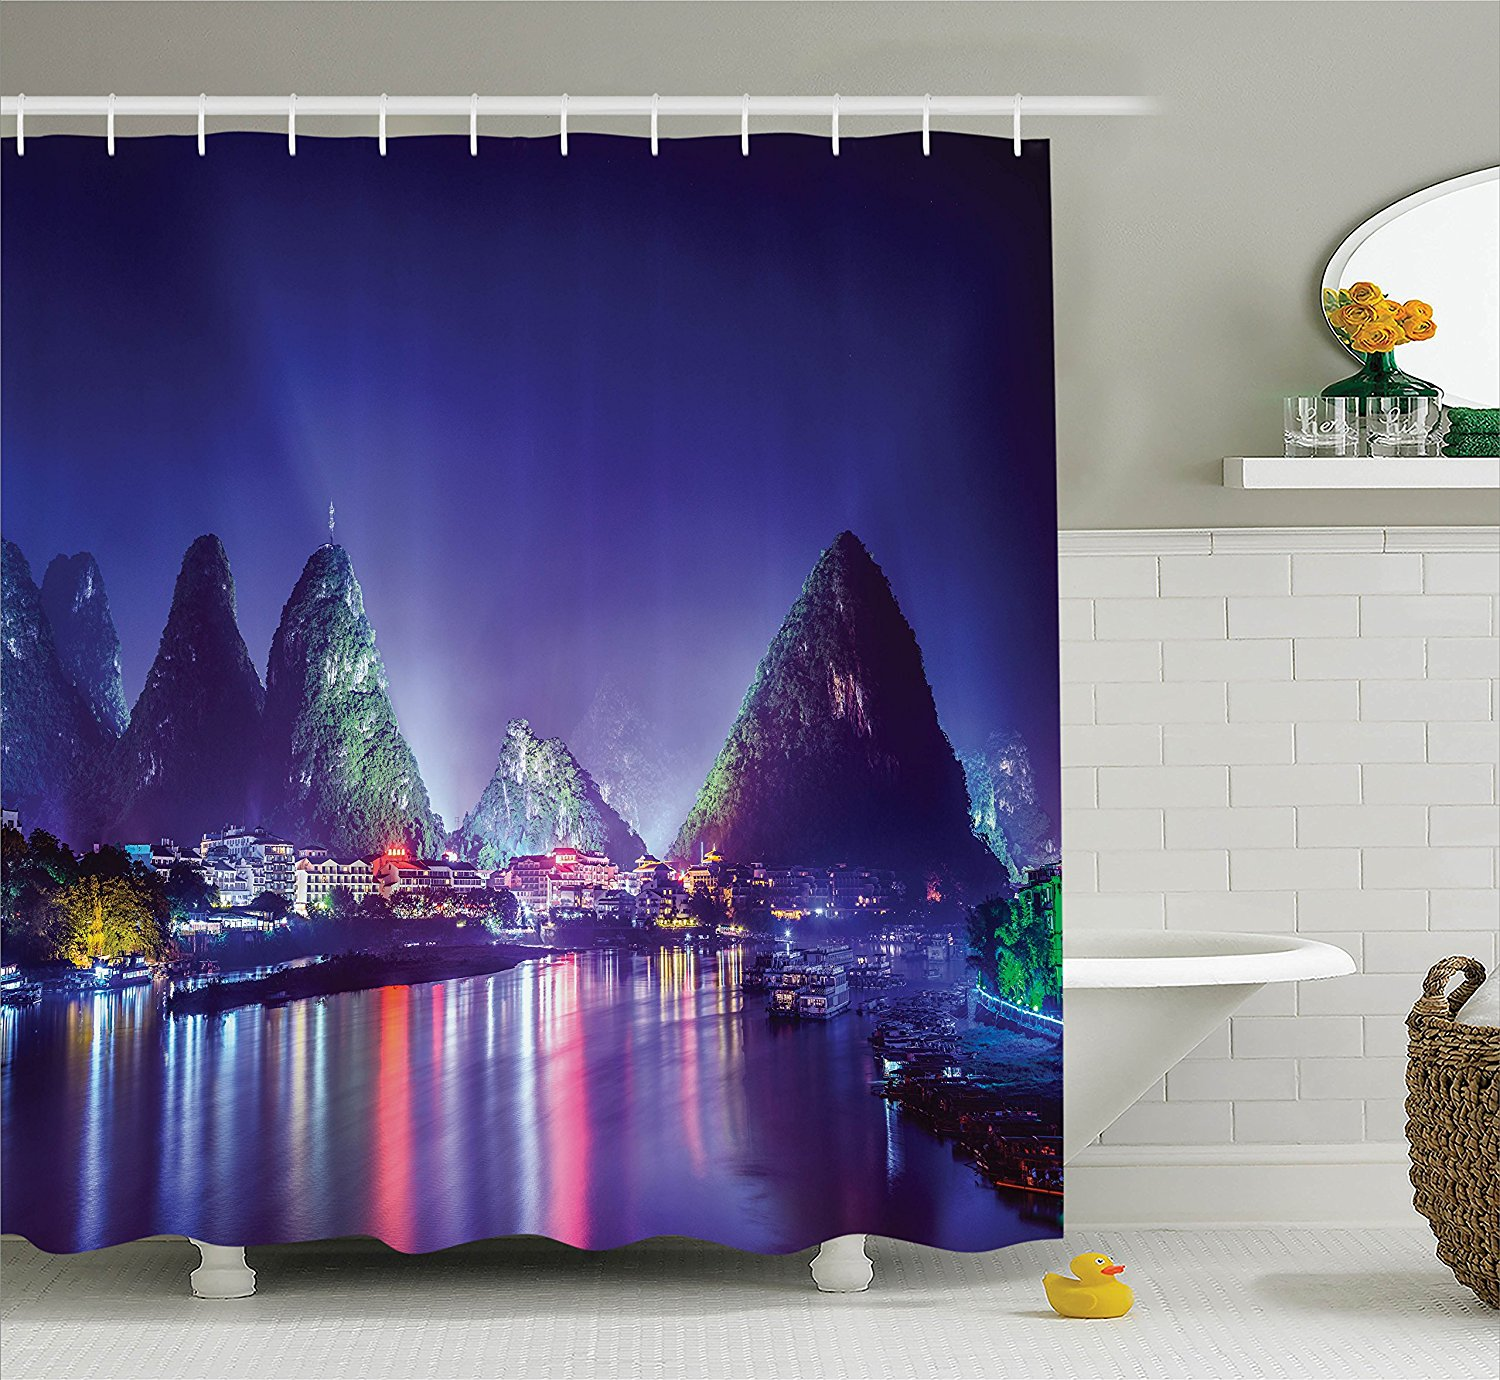 Lake House Decor Collection, Chinese Mountain with Trees Landscape Colorful Light Show River Boats on Water Night-time